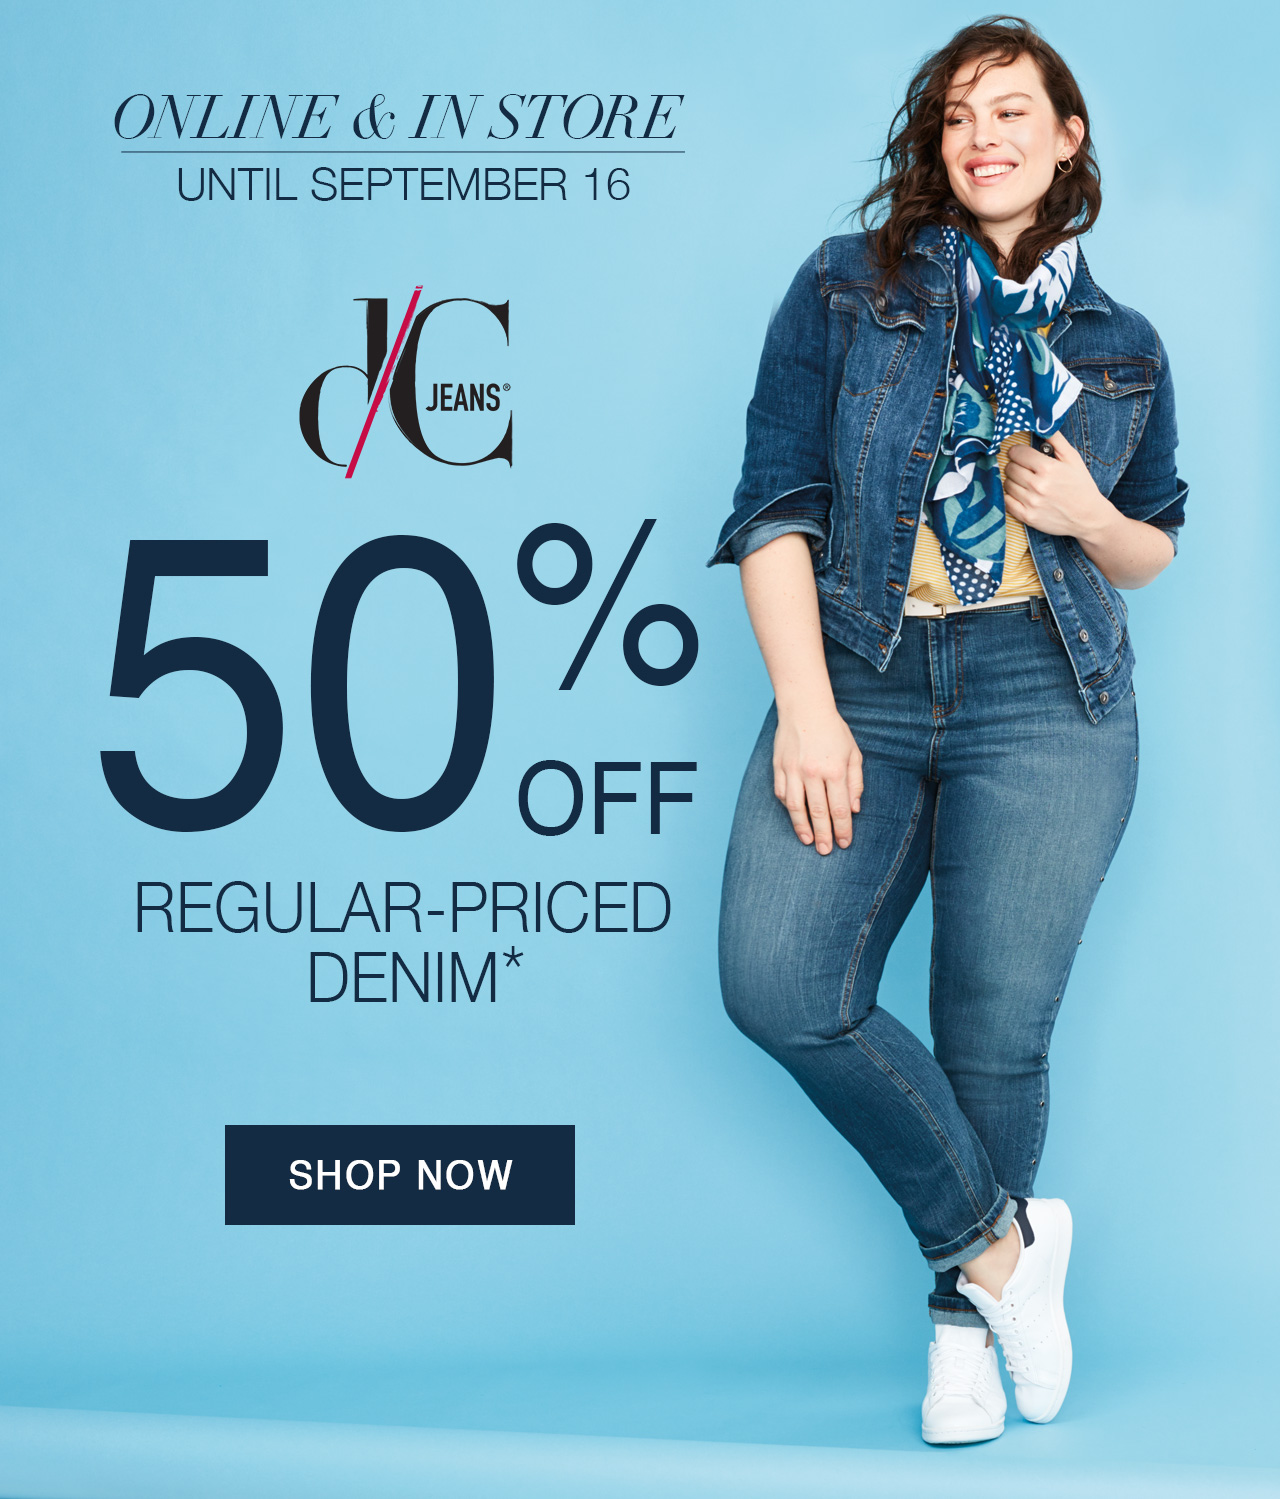 50% off* d/C Jeans jackets and pants